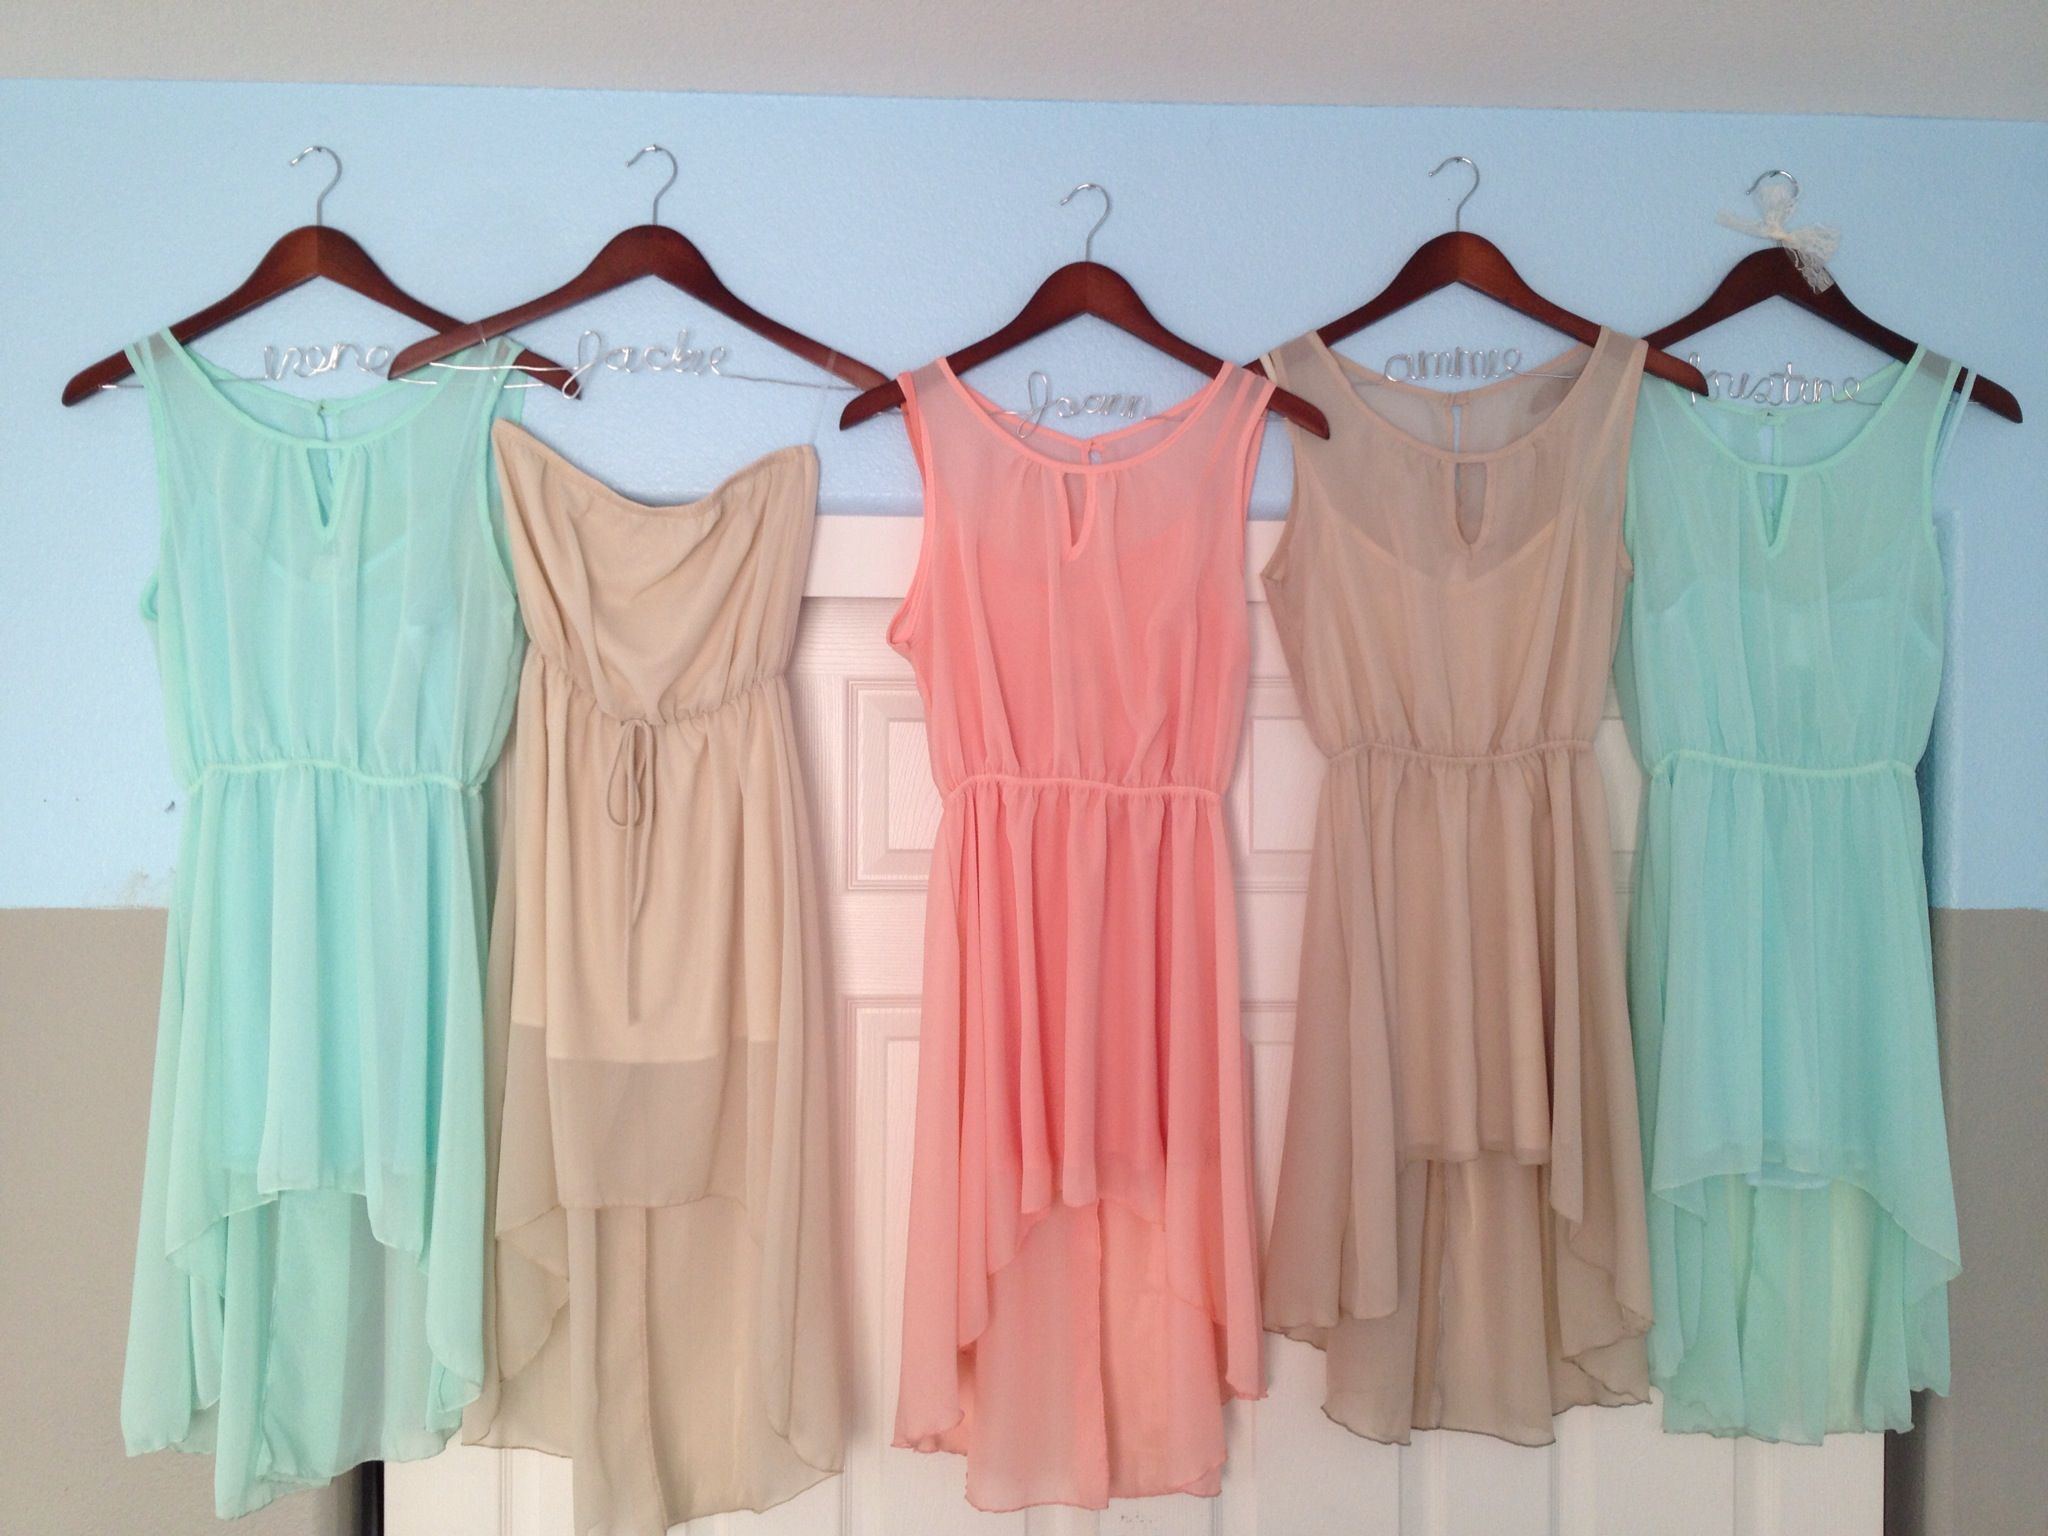 Mix & Match Pastel bridesmaid dresses for beach wedding | wedding ...